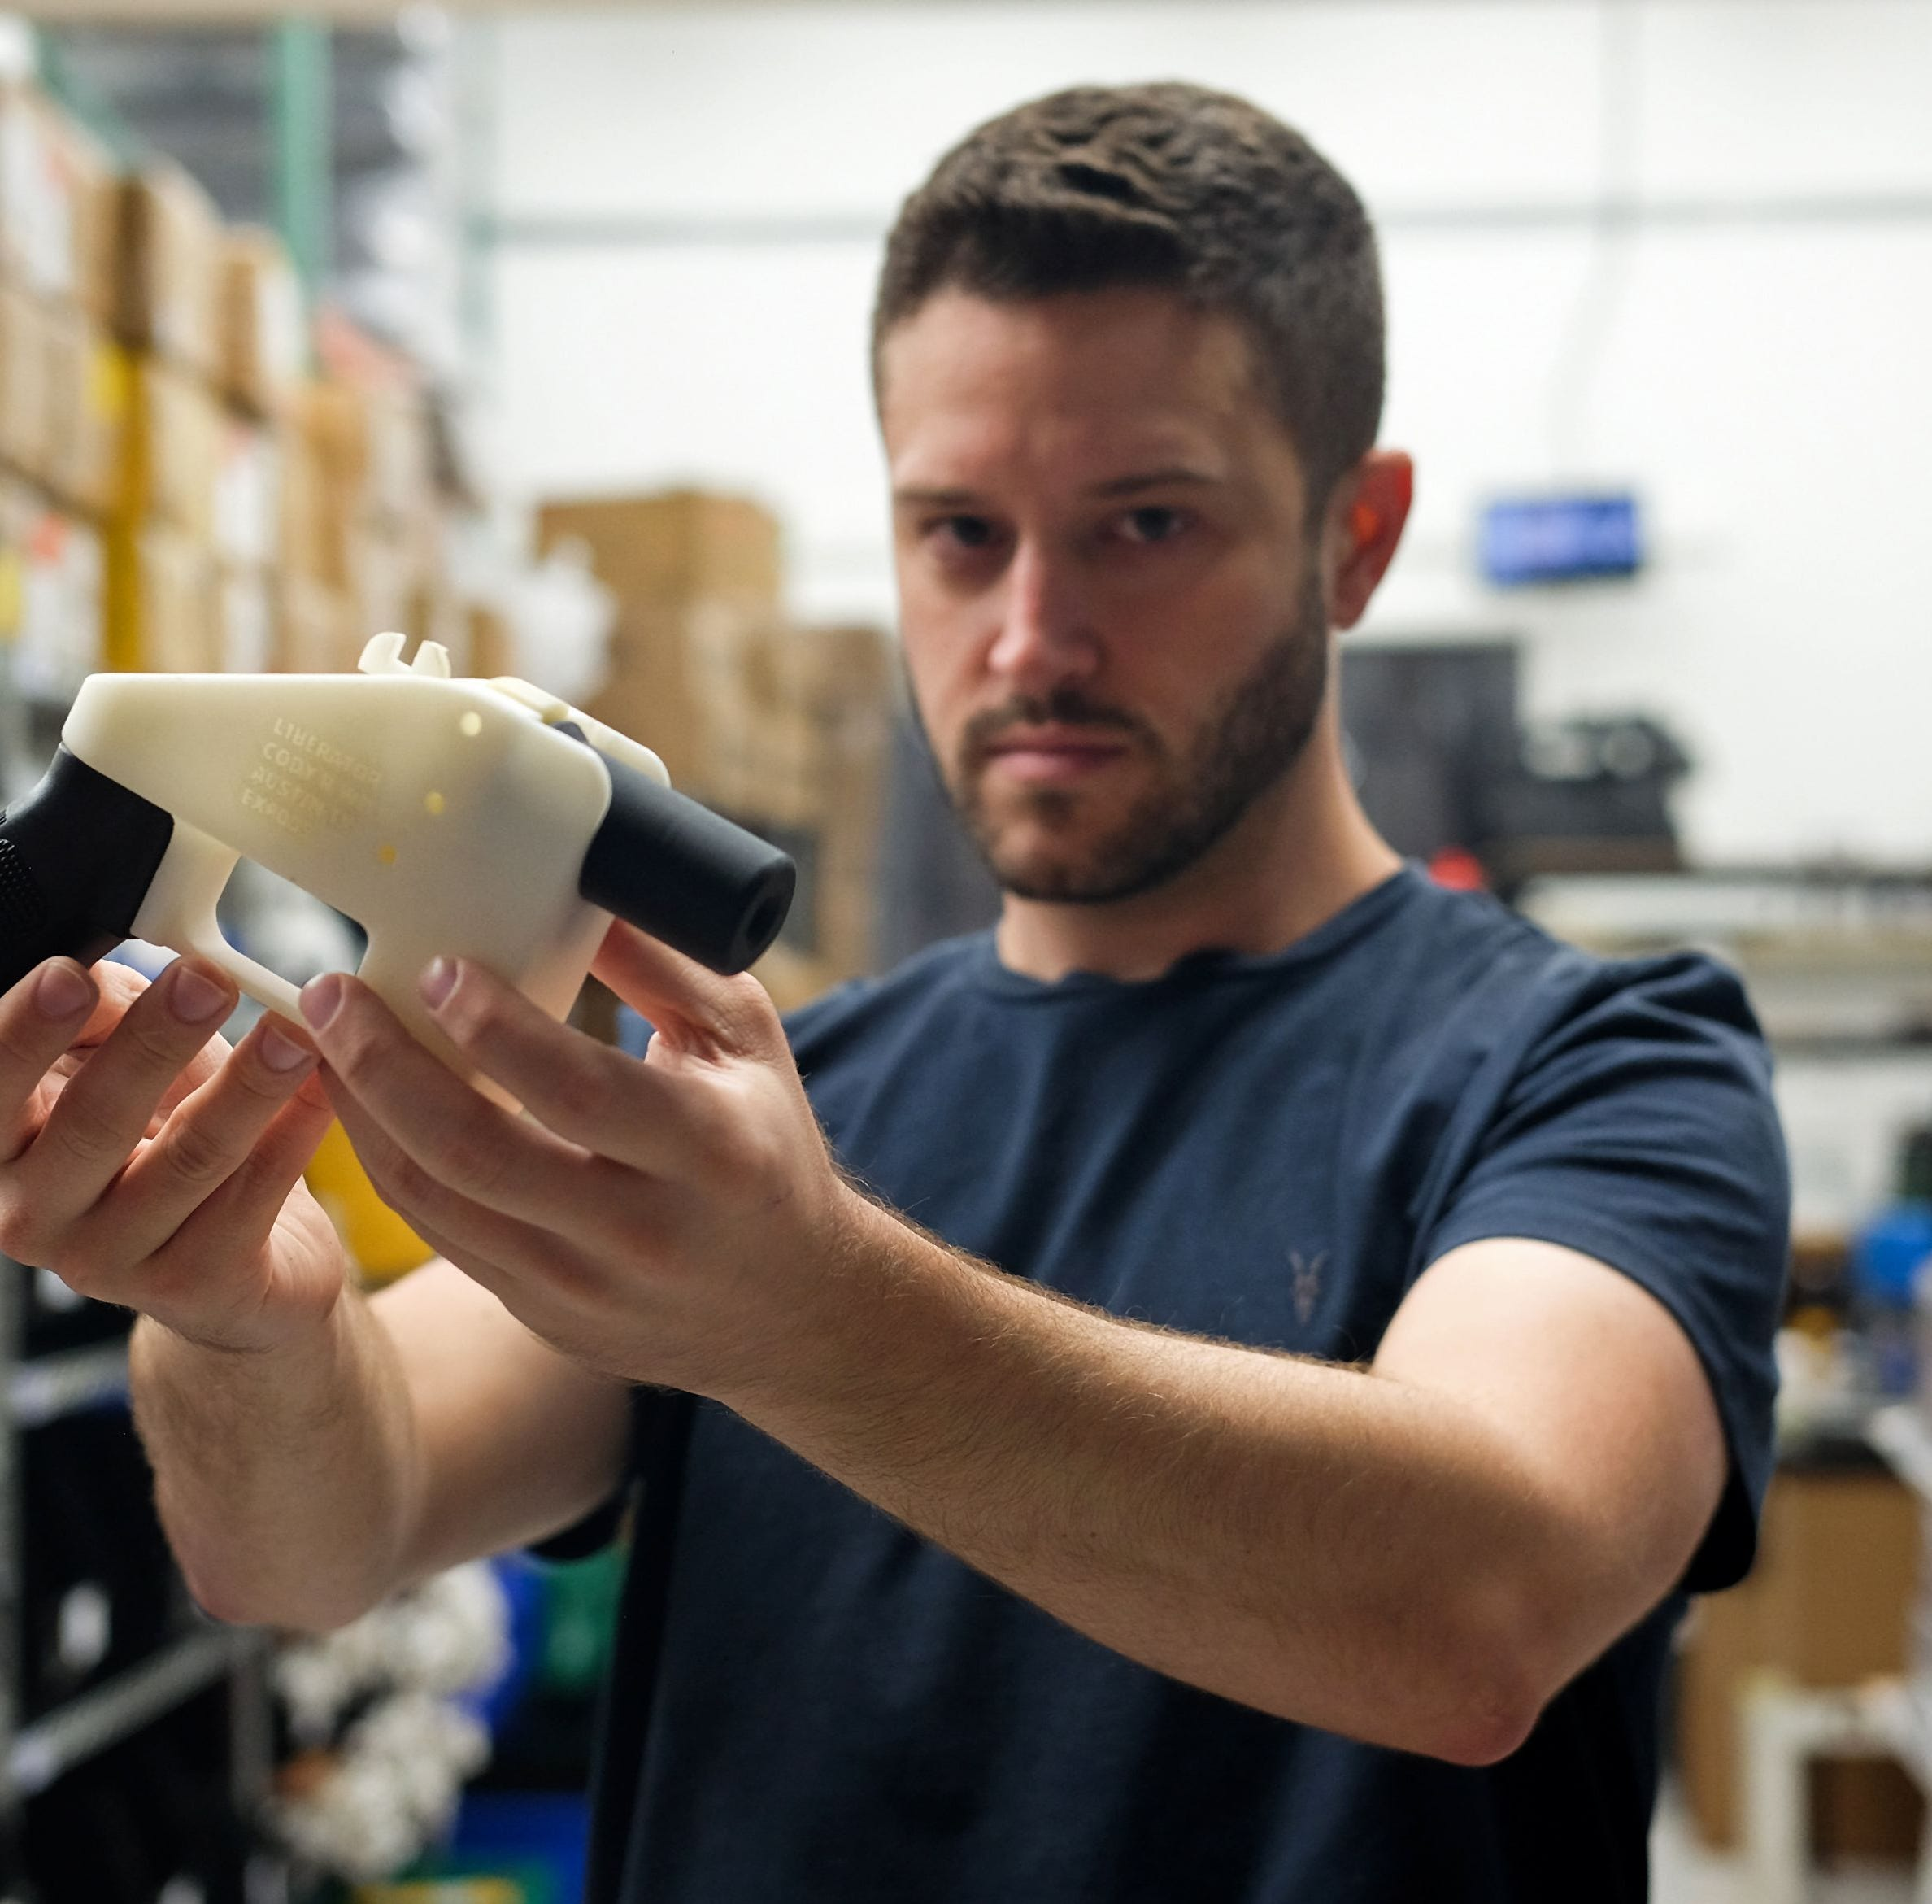 Cody Wilson, 3D printed-gun designer, jailed in Houston on sex assault charge following arrest